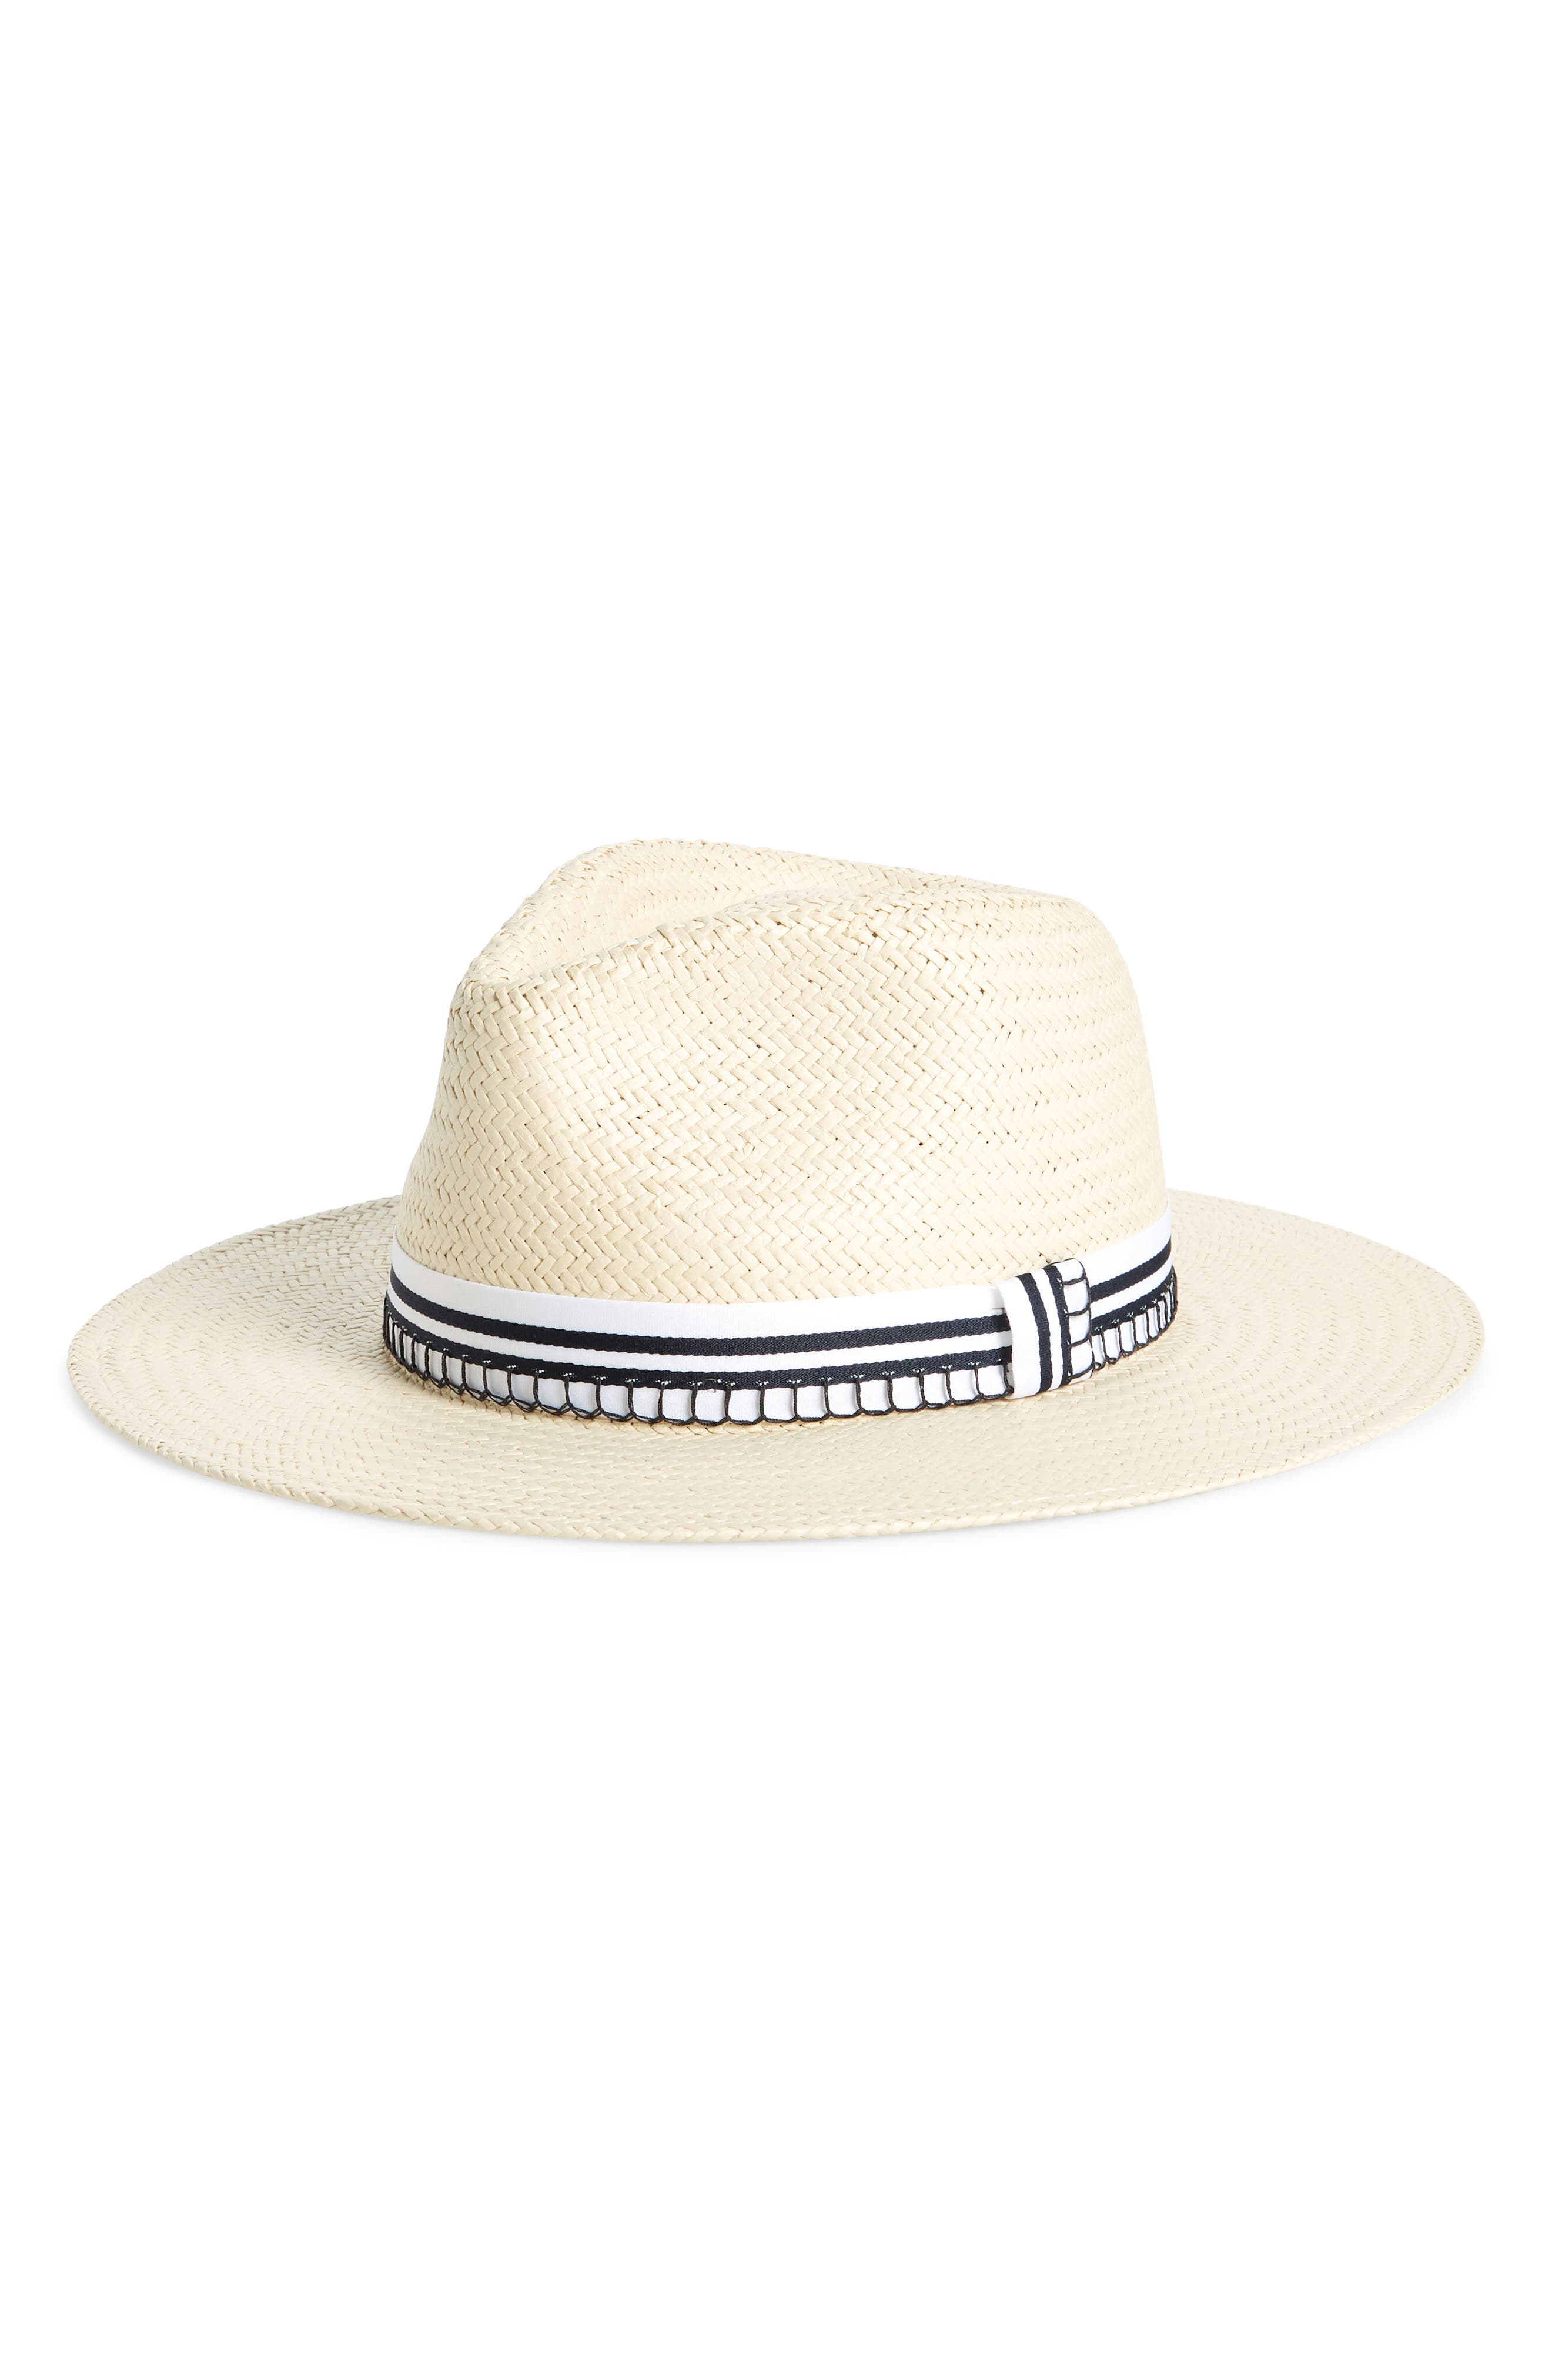 Packable Straw Fedora, Main, color, 200